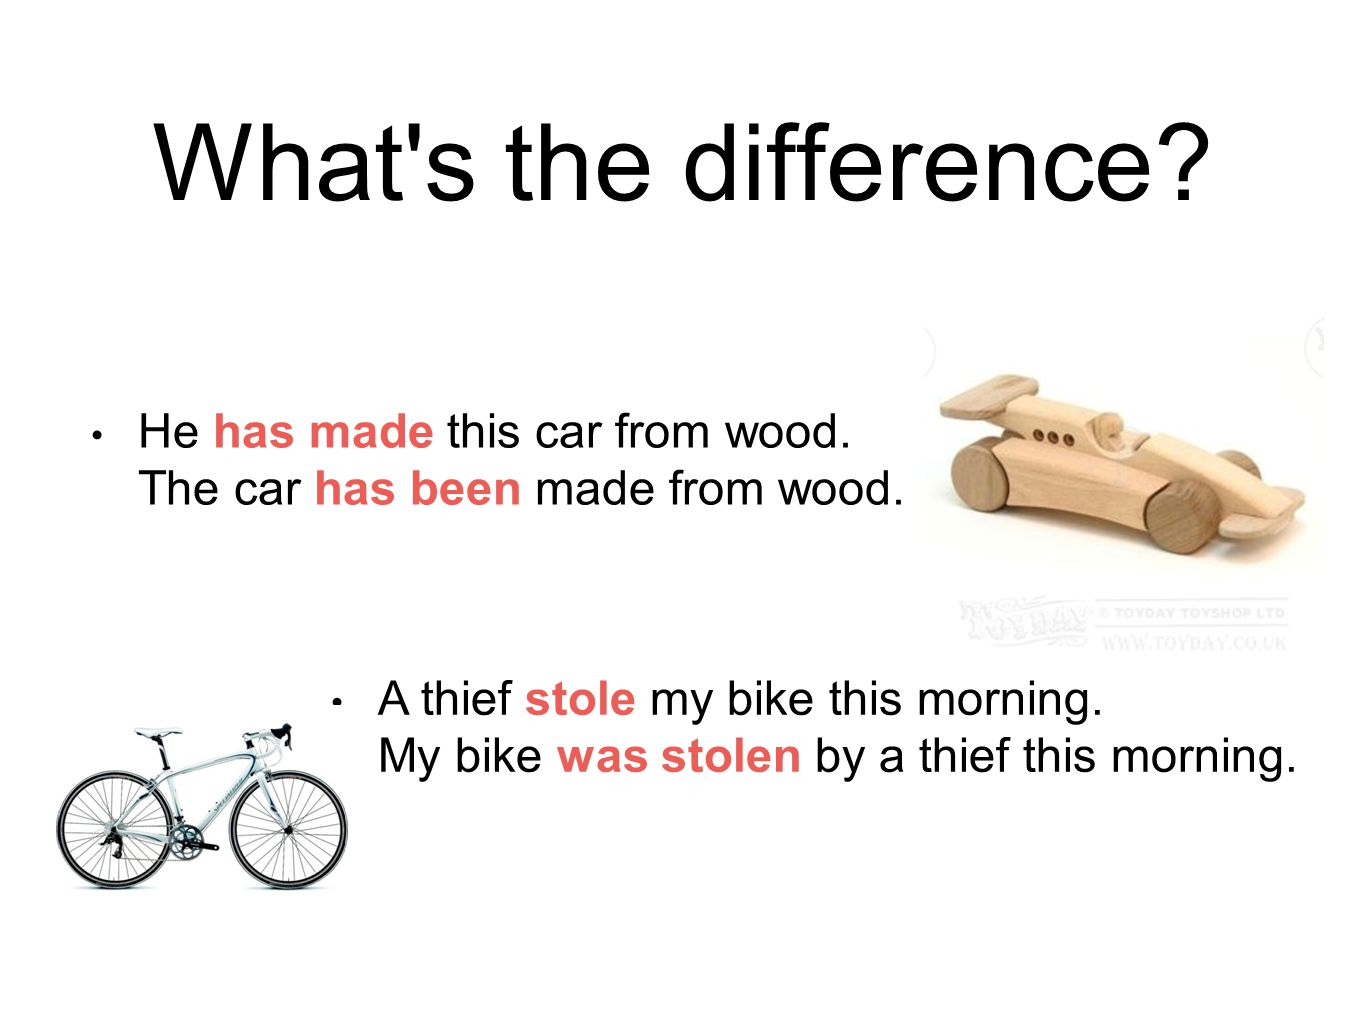 What s the difference He has made this car from wood. The car has been made from wood.